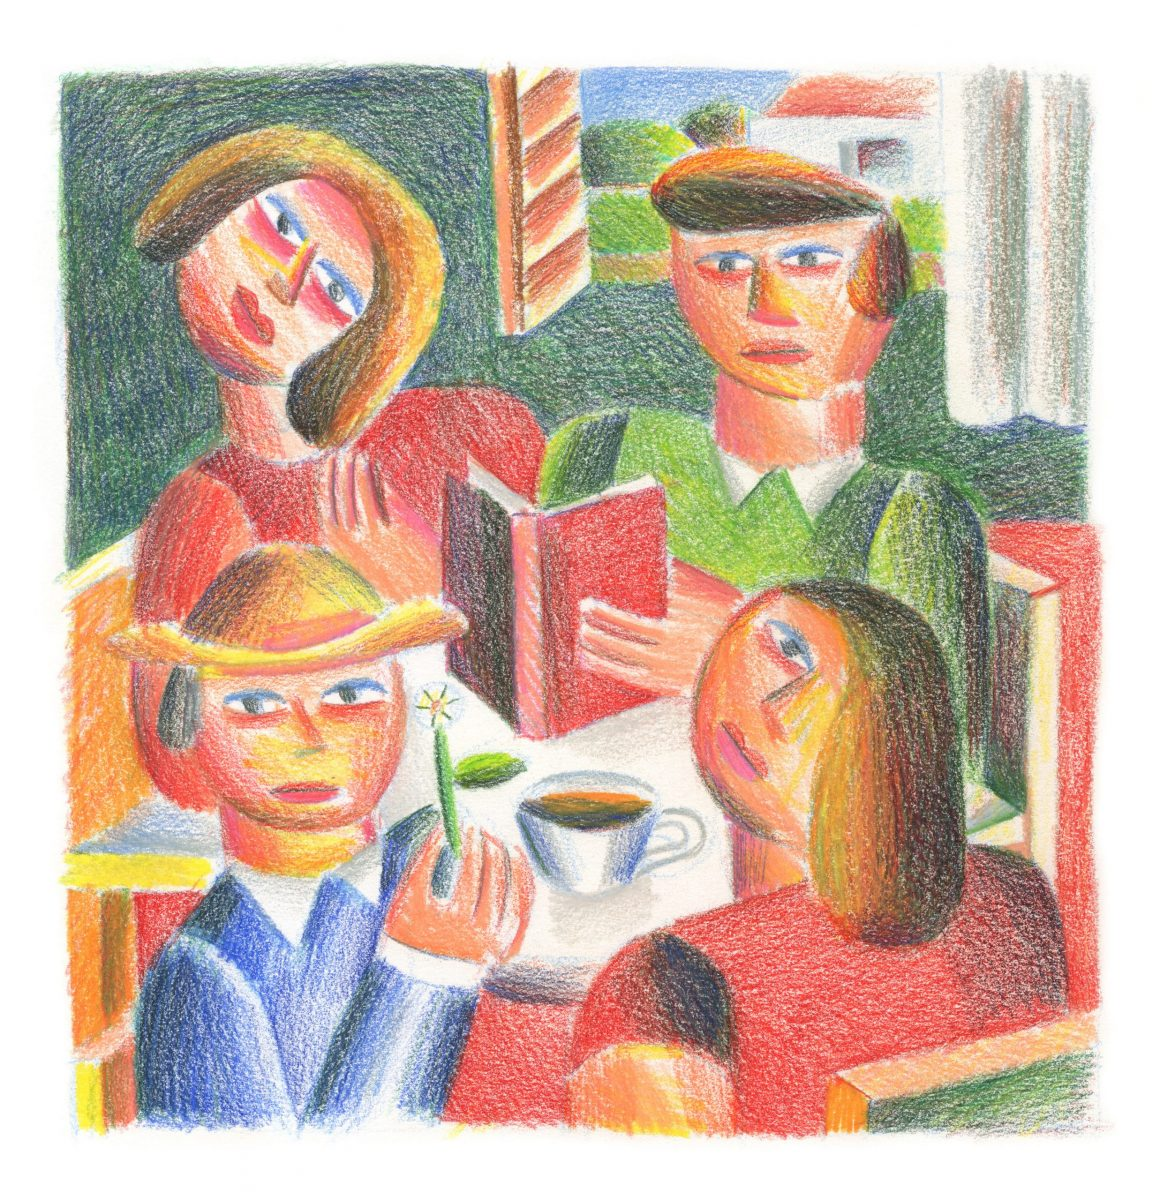 Andy Rementer, Book Club, 2020, colored pencil on paper, 30,5×22,9 cm, CROP